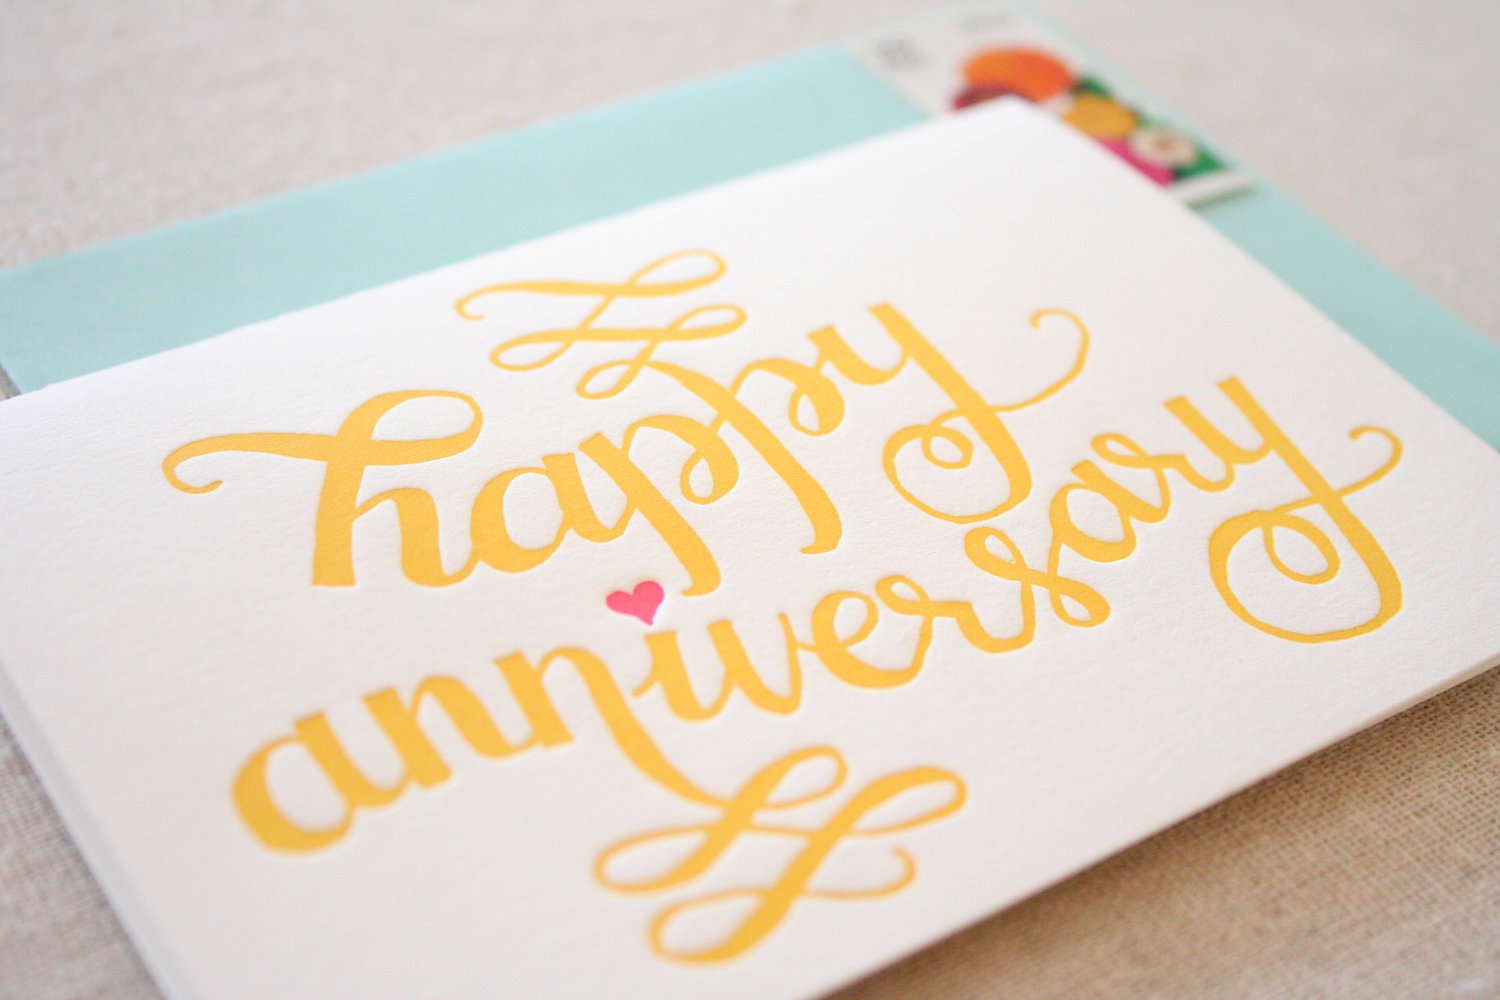 Relationship Quotes Wallpapers Stationery A Z Anniversary Cards